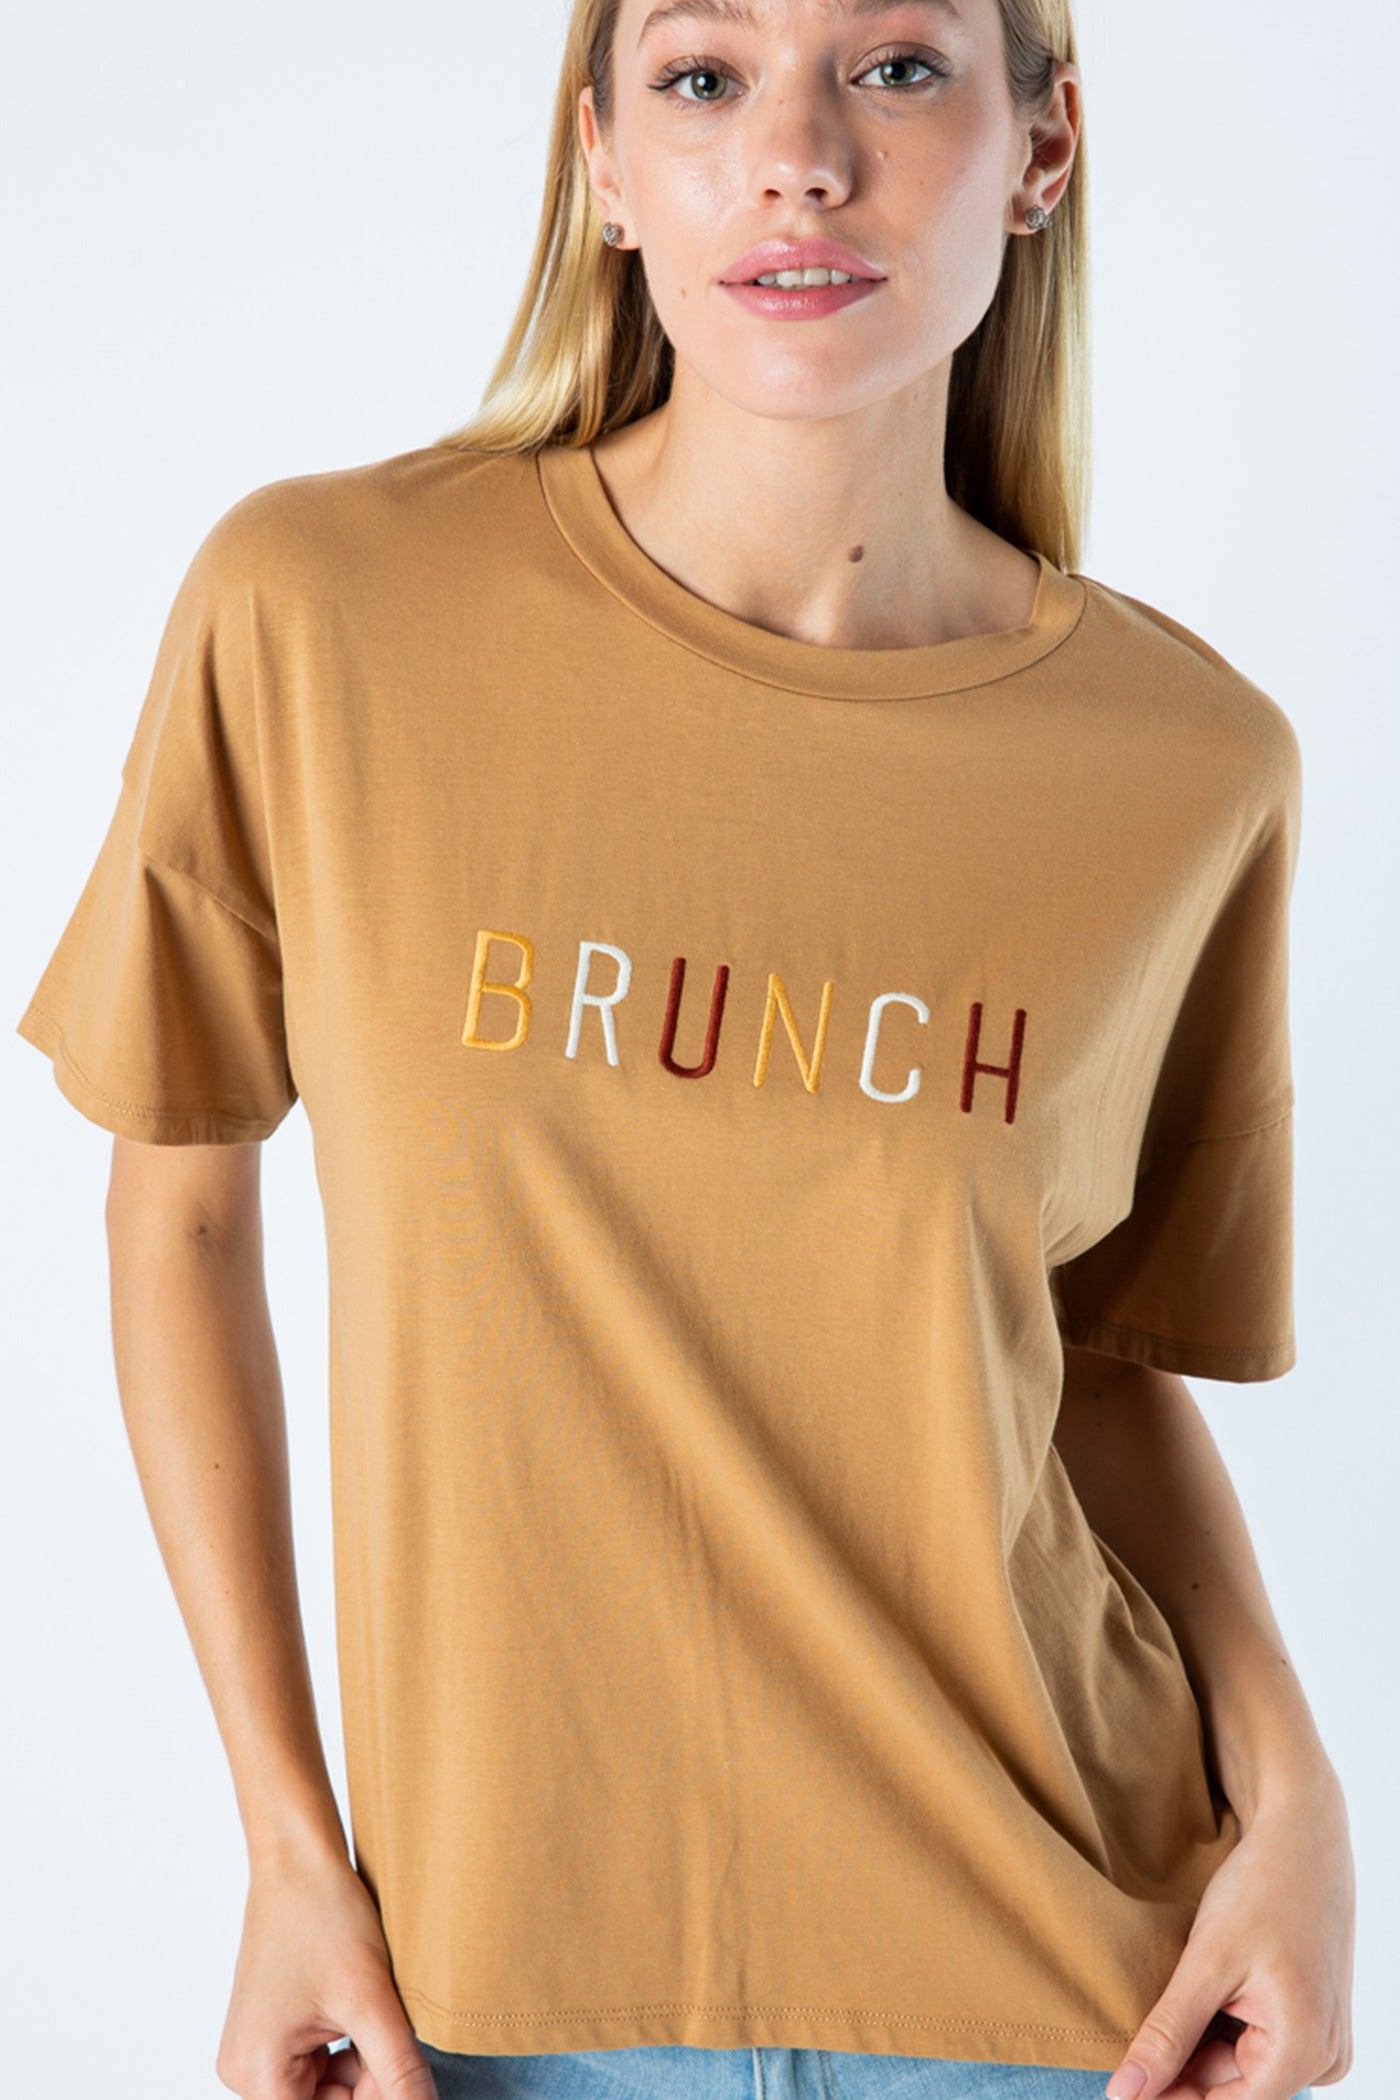 The Brunch Top by For Good